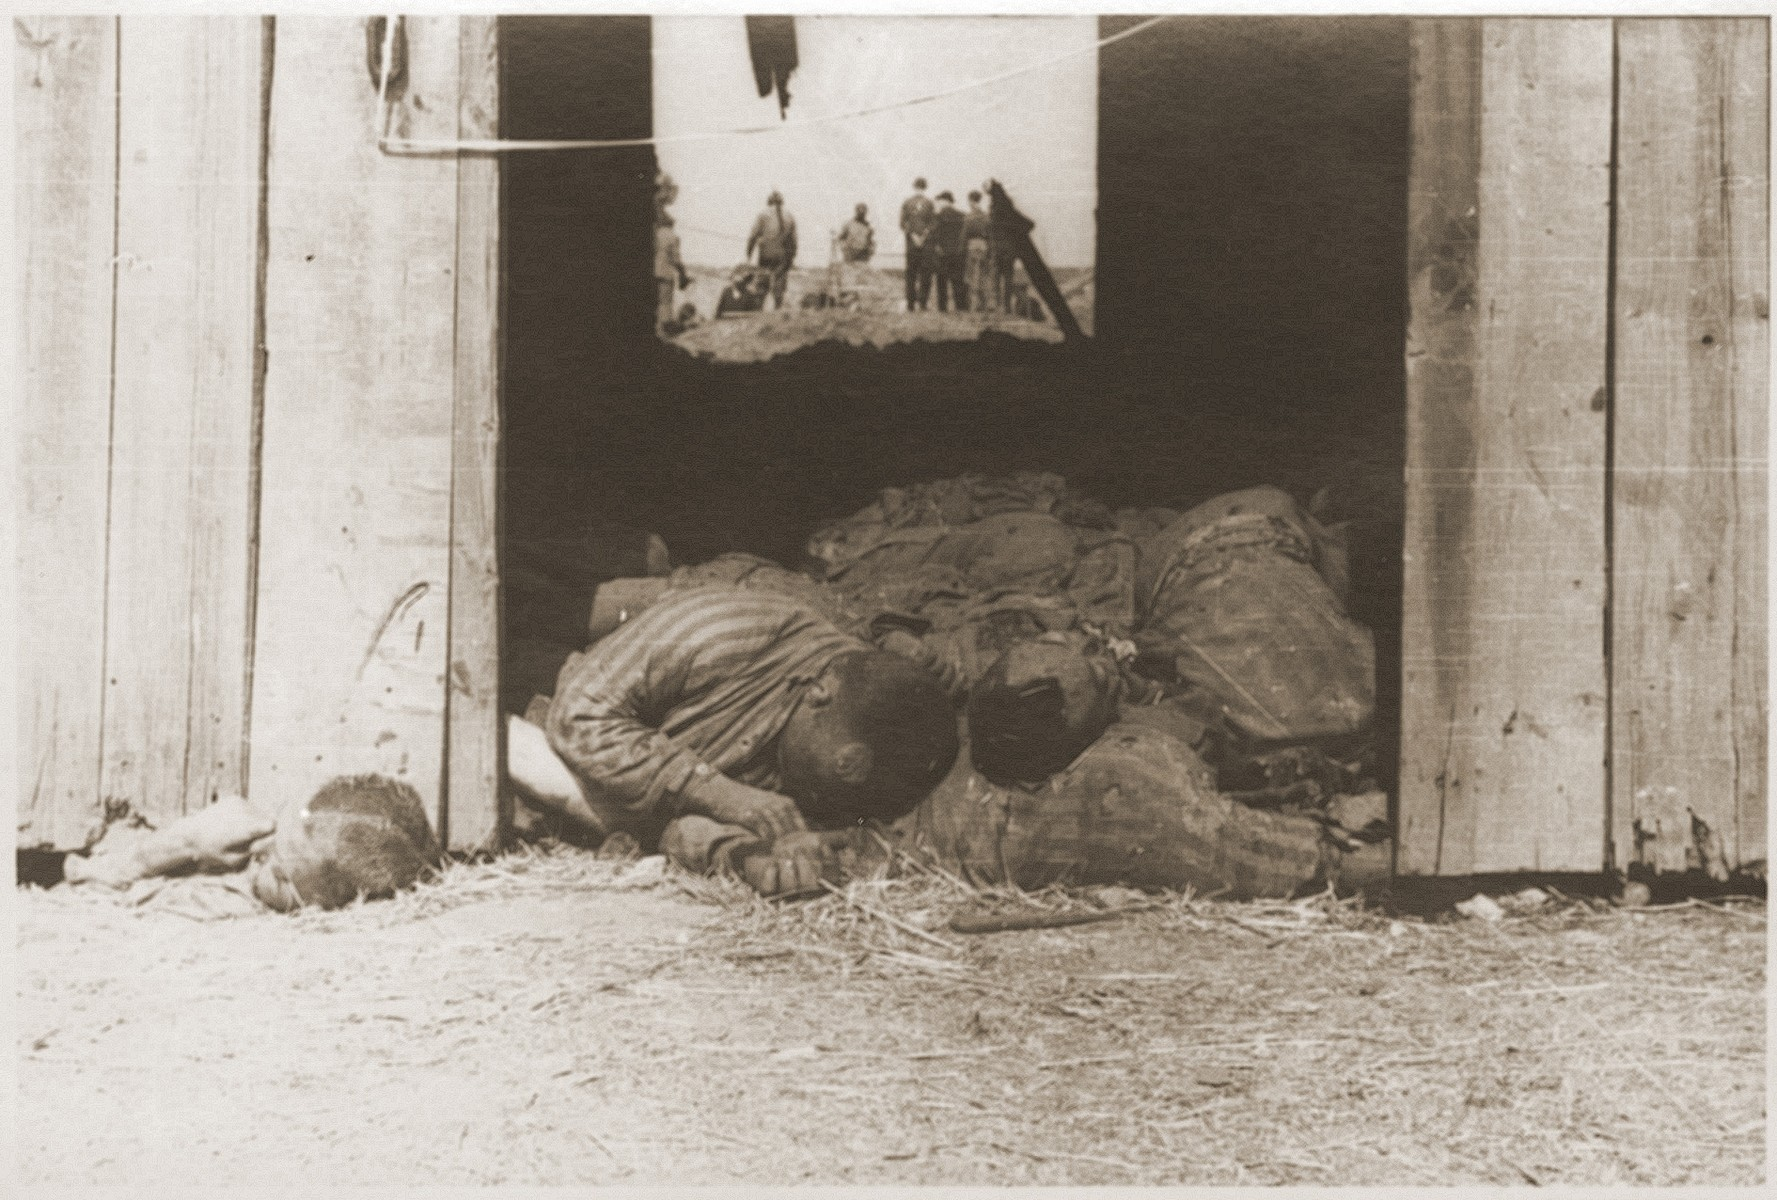 The bodies of concentration camp prisoners killed by the SS in a barn outside of Gardelegen.  In the background American soldiers inspect the barn.